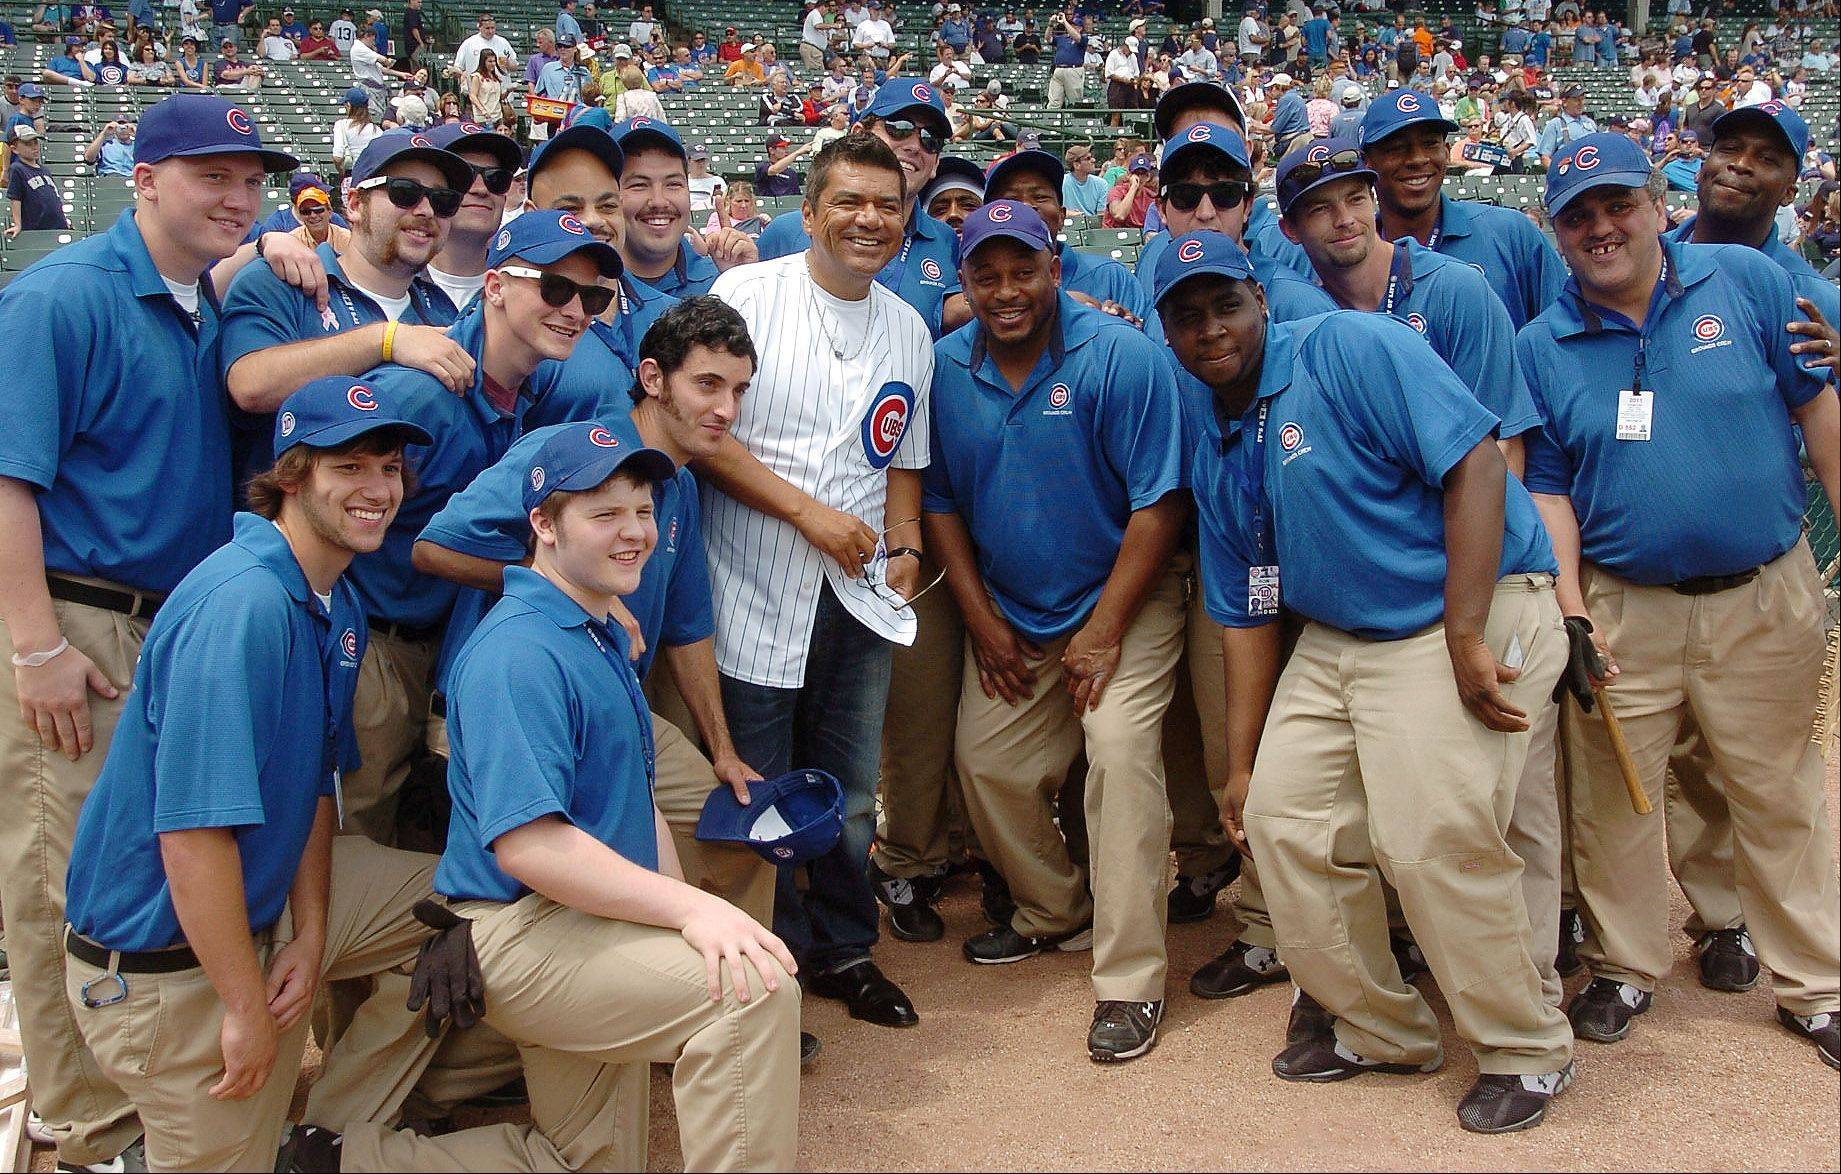 Bob Chwedyk/bchwedyk@dailyherald.comGeorge Lopez gets his picture taken with the grounds crew before Cubs vs. Yankees at Wrigley Field. Lopez also threw out the first pitch.